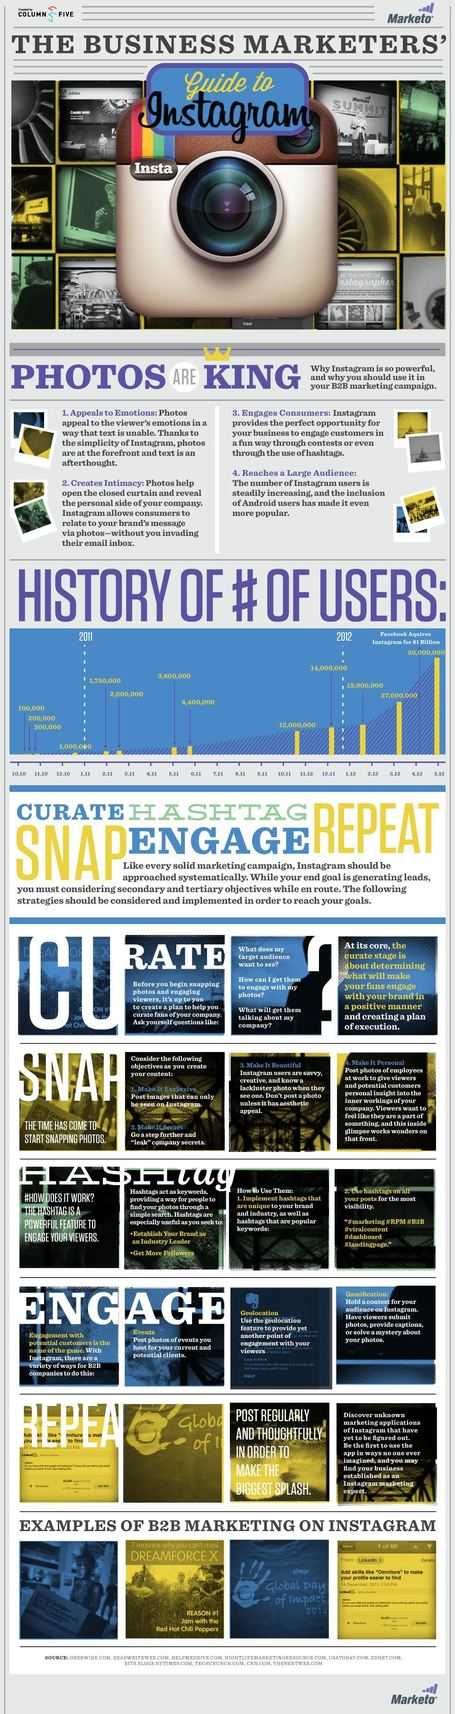 A Detailed Business Marketing Guide to Touch Popularity Like Instagram | All Infographics | All Infographics | Scoop.it